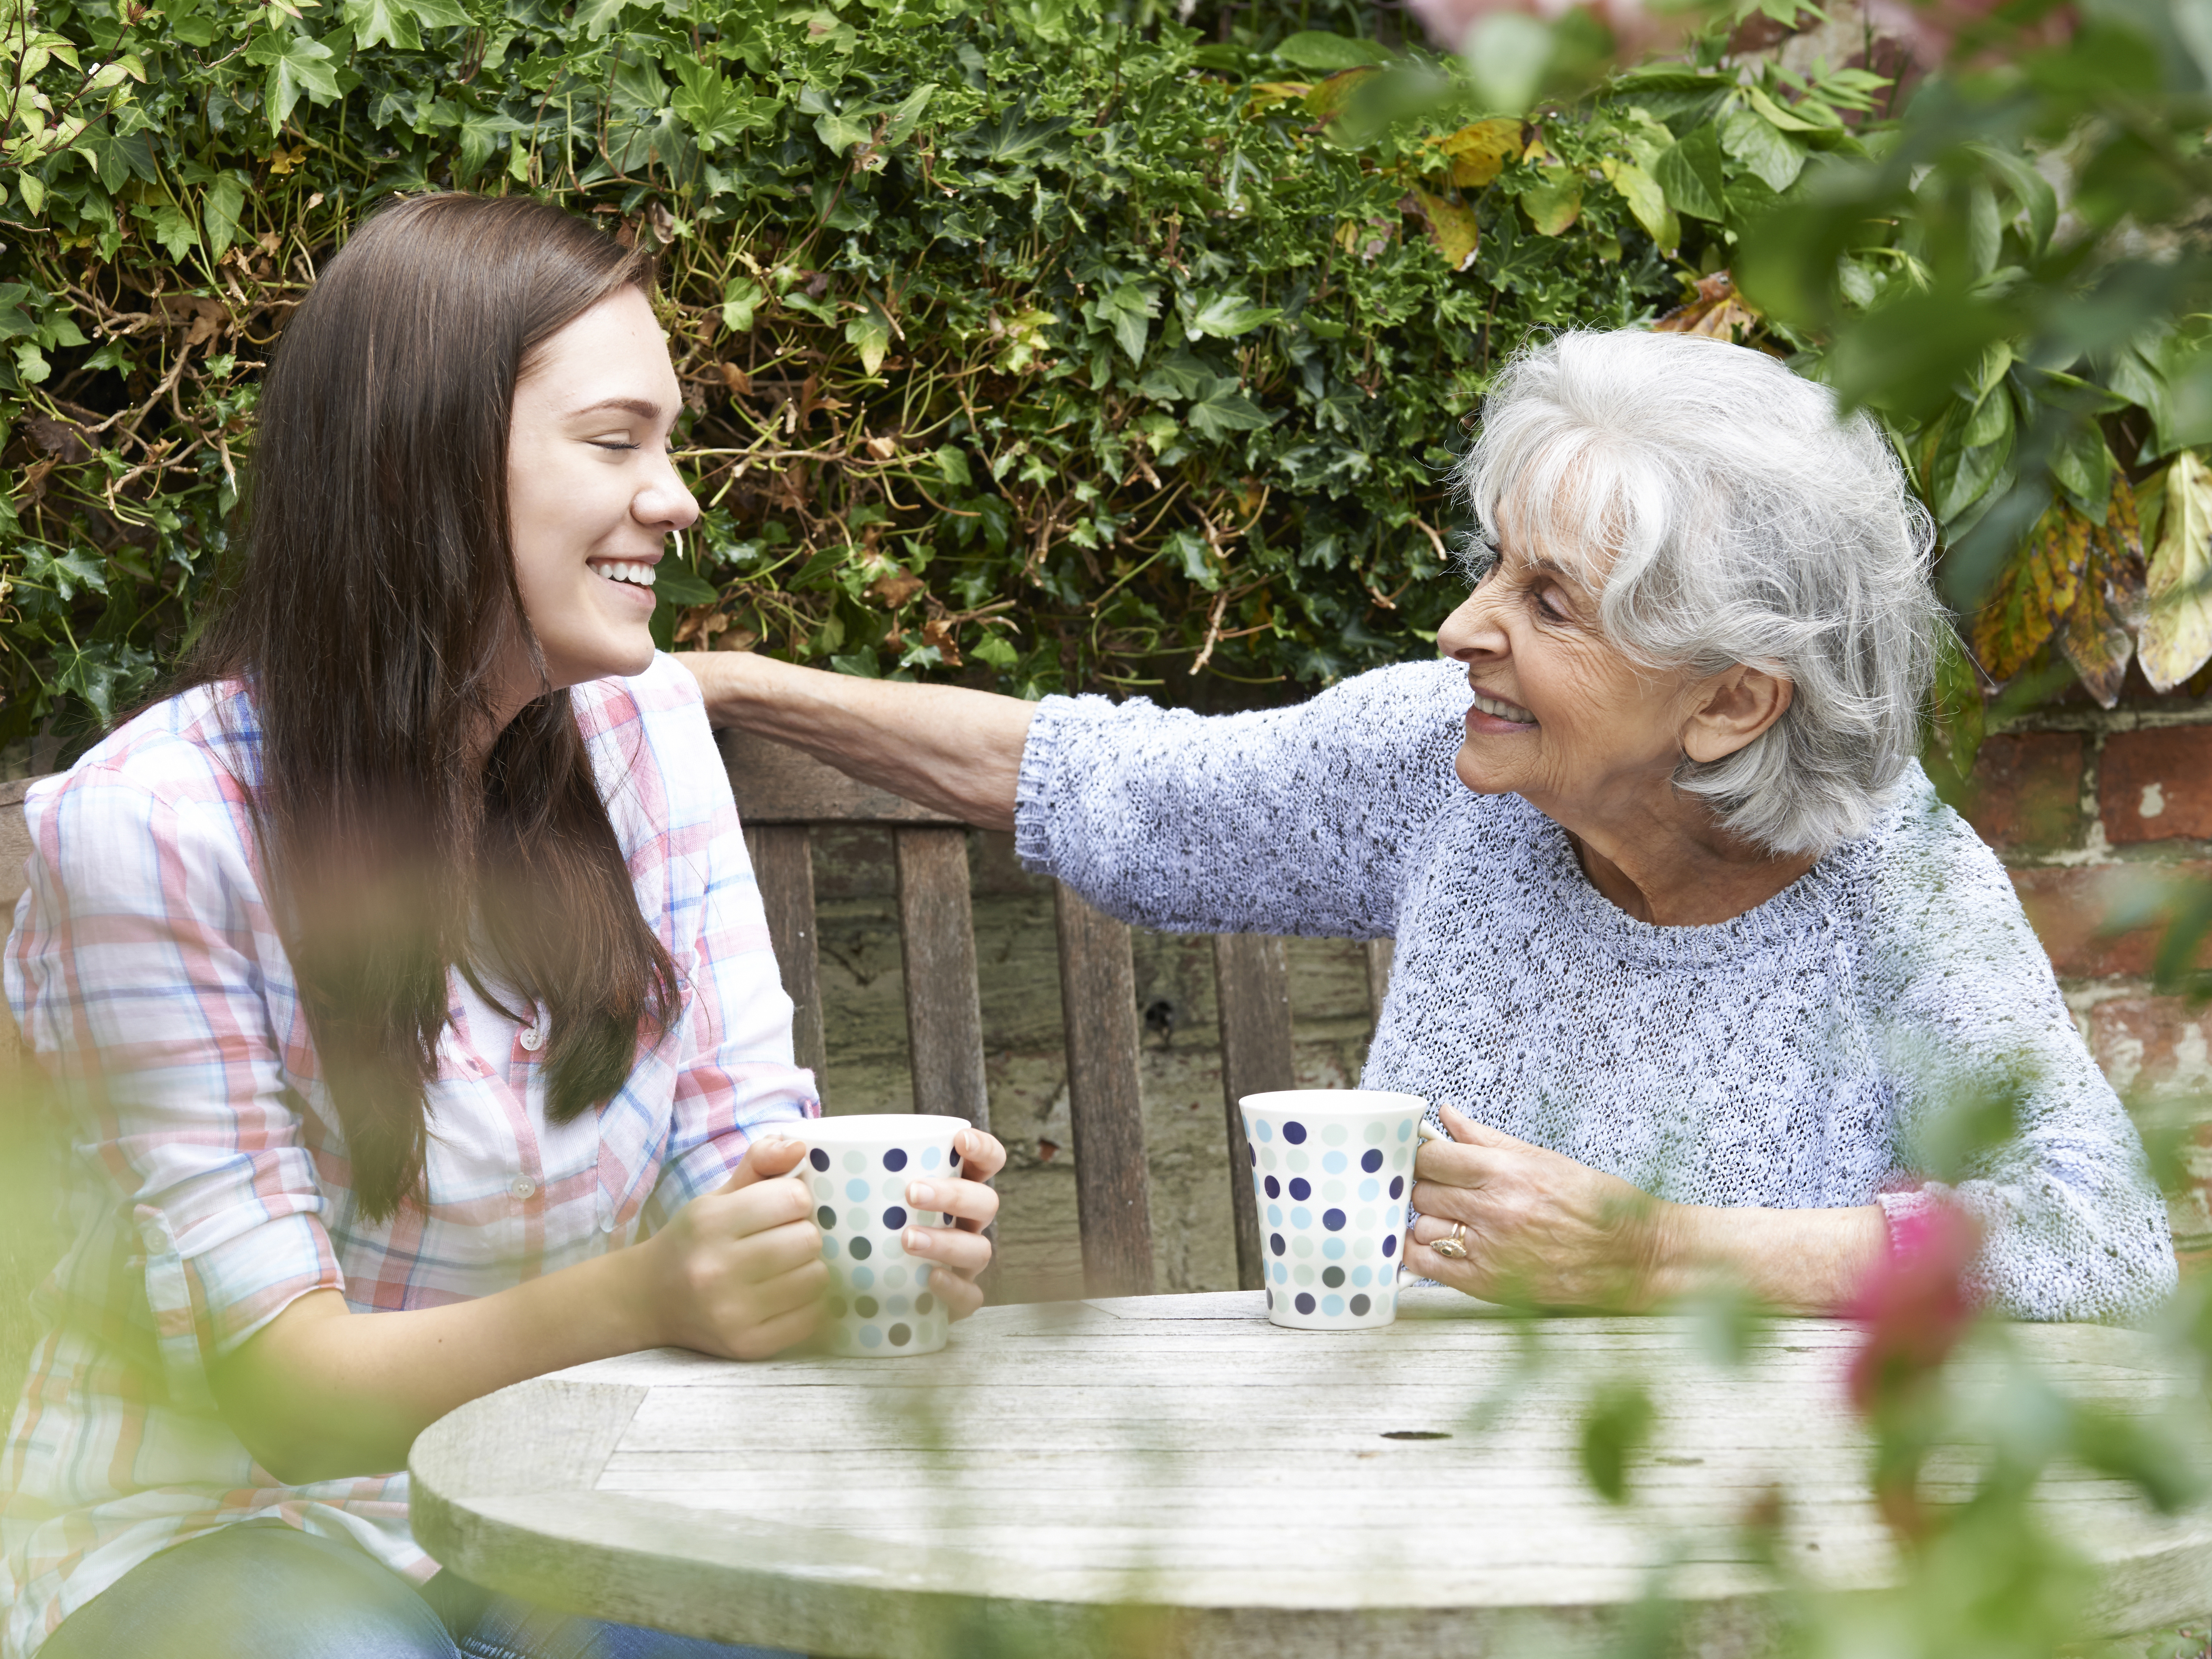 An older woman having a cuppa with a person.